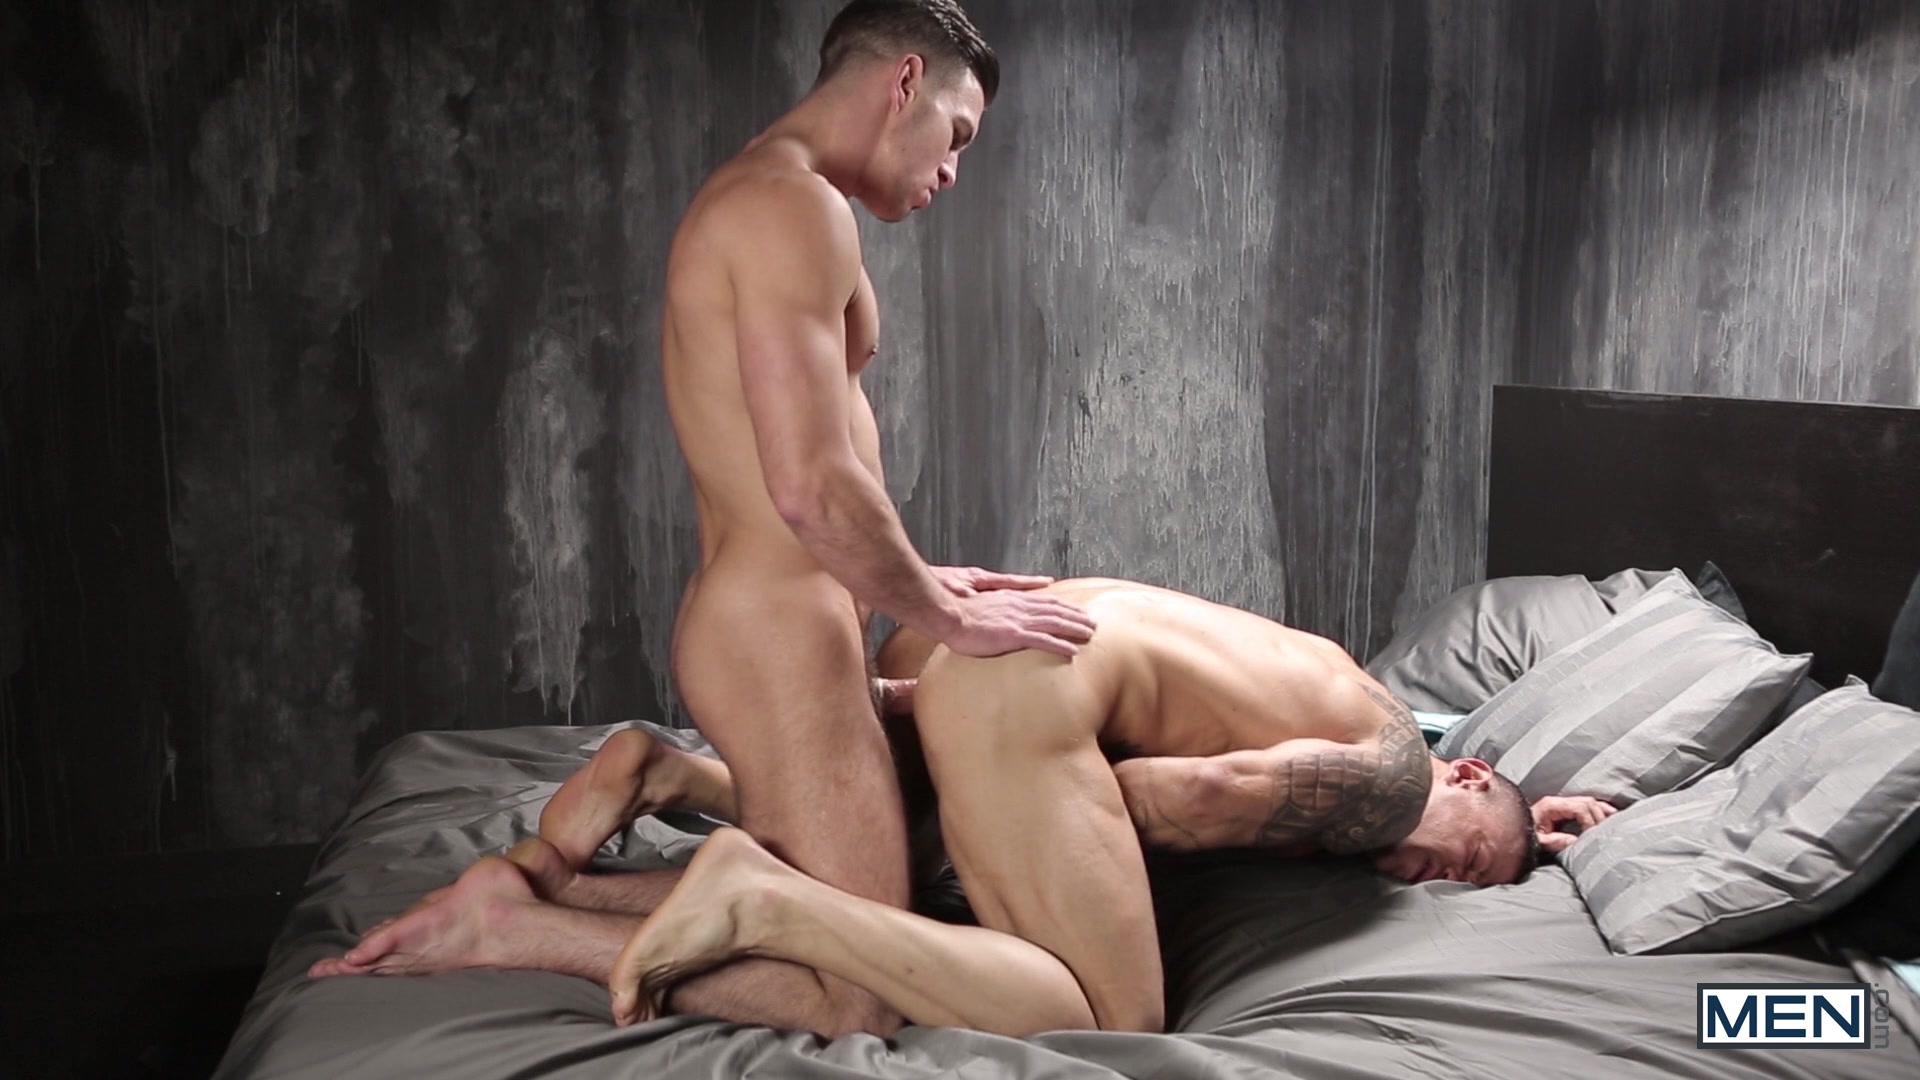 Watch Suite 33 Part 4 – Gom – Gods Of Men – Paddy O'brian And Goran (MEN.COM) Gay Porn Tube Videos Gifs And Free XXX HD Sex Movies Photos Online